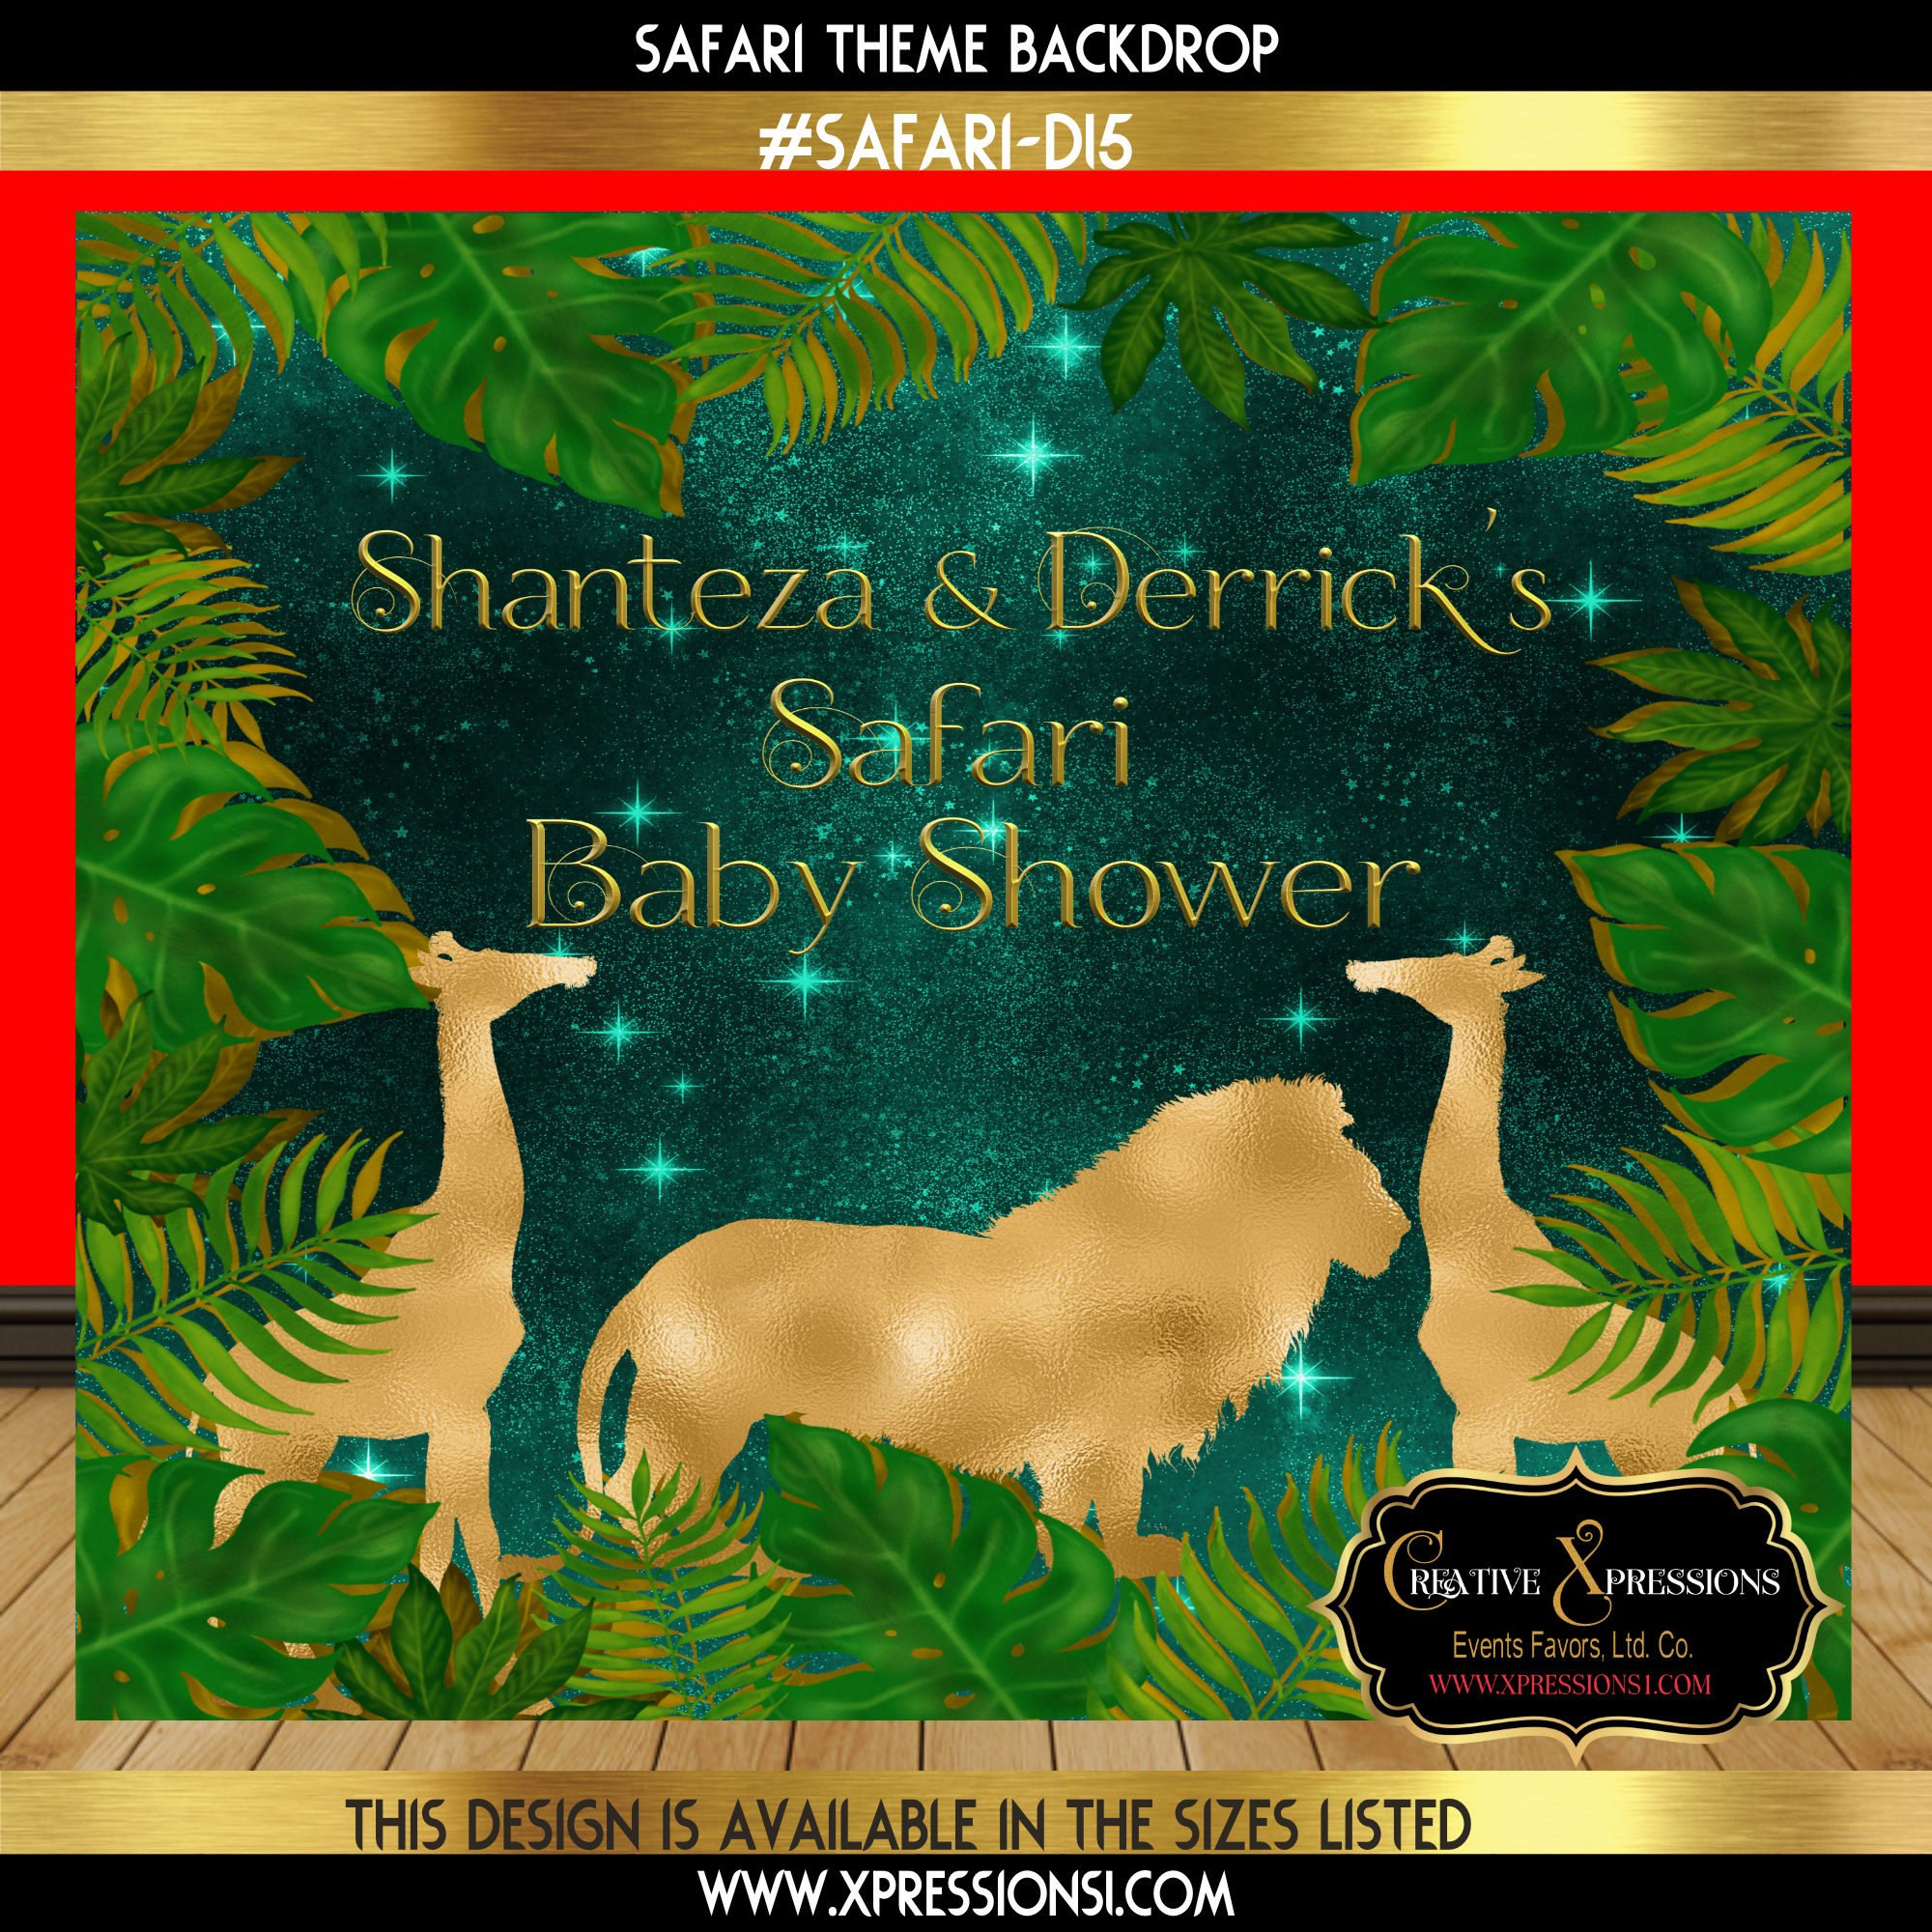 Safari Green Baby Shower Backdrop